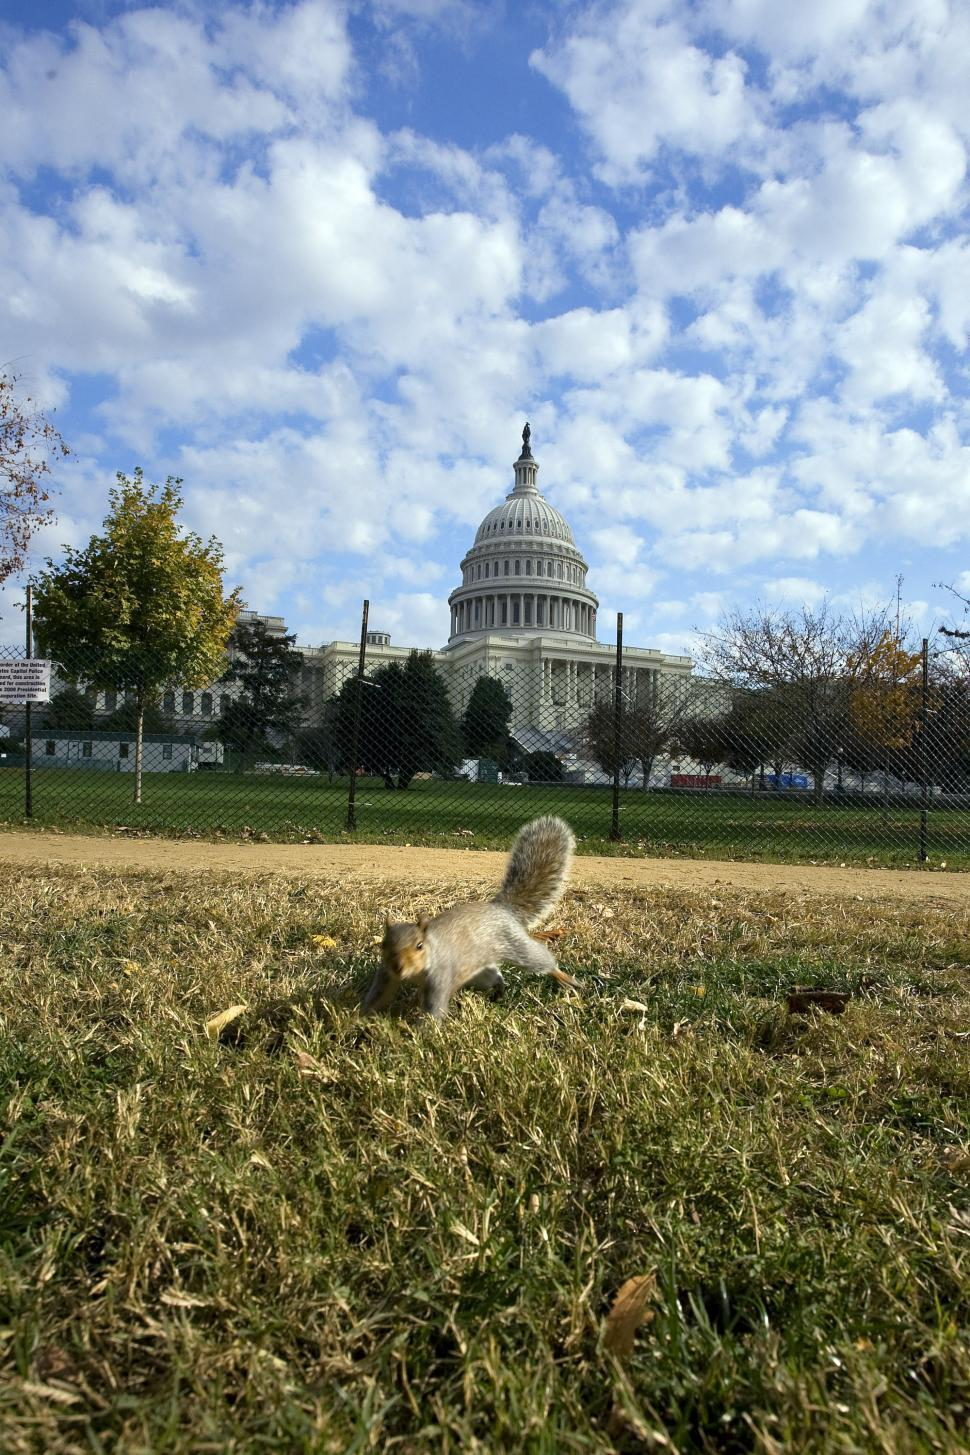 Download Free Stock HD Photo of Squirrel at US Capitol Online